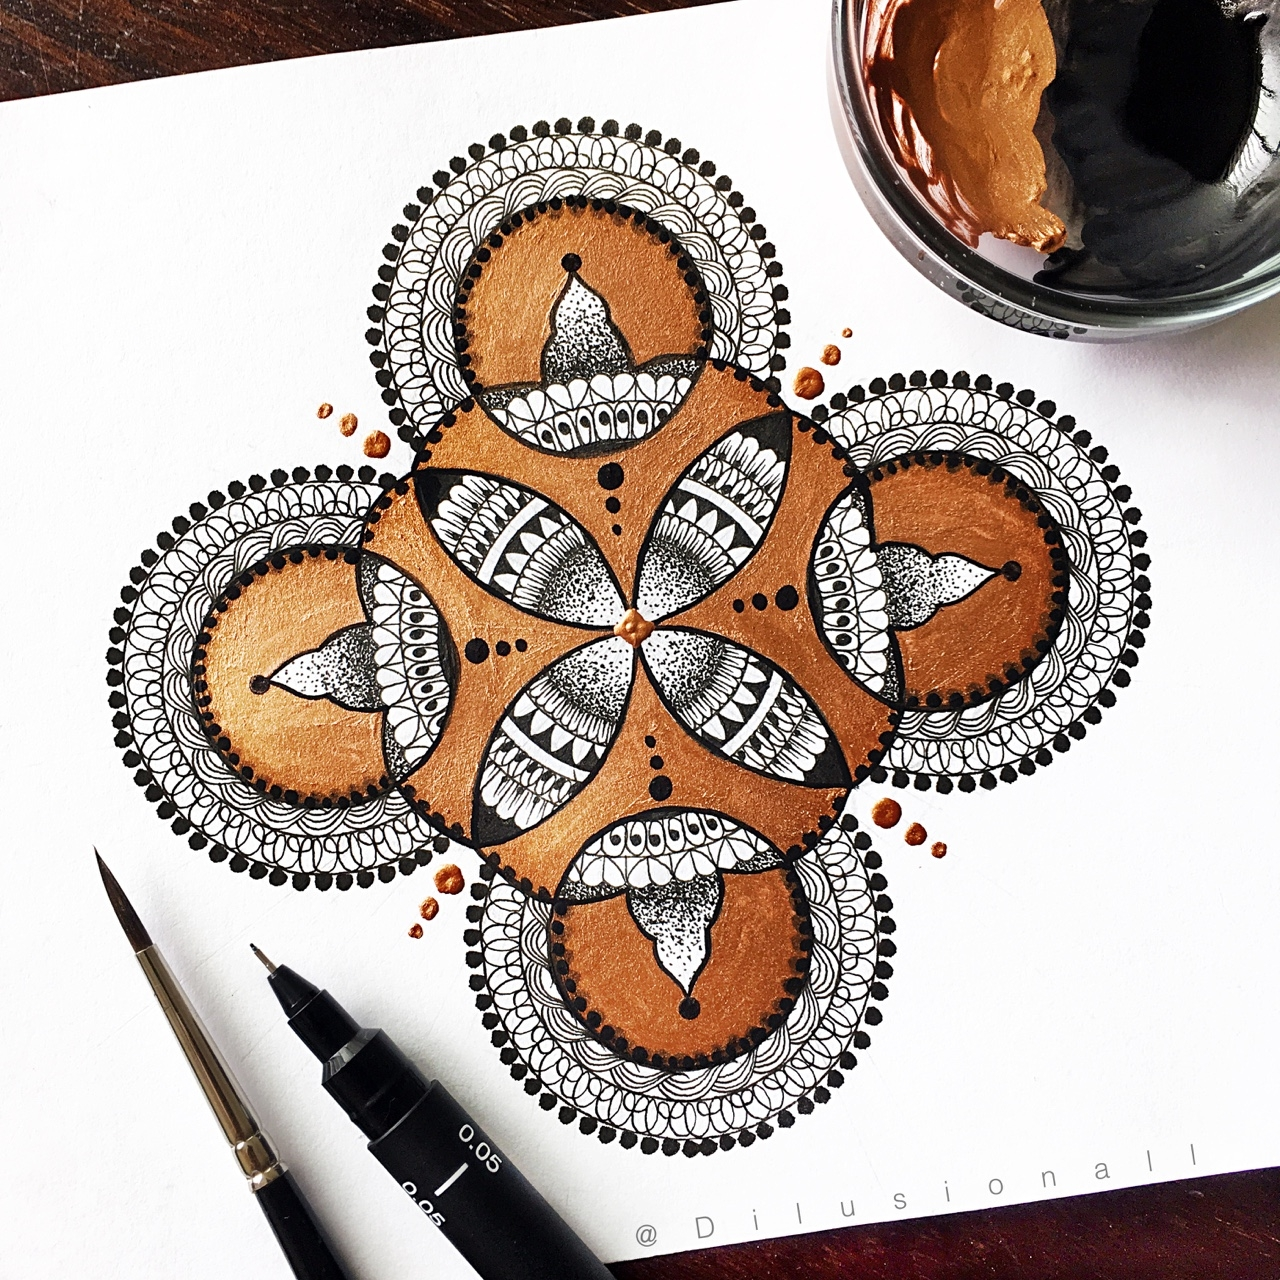 03-Copper-Dilrani-Kauris-Symmetry-and-Style-in-Mandala-and-Mehndi-Drawings-www-designstack-co